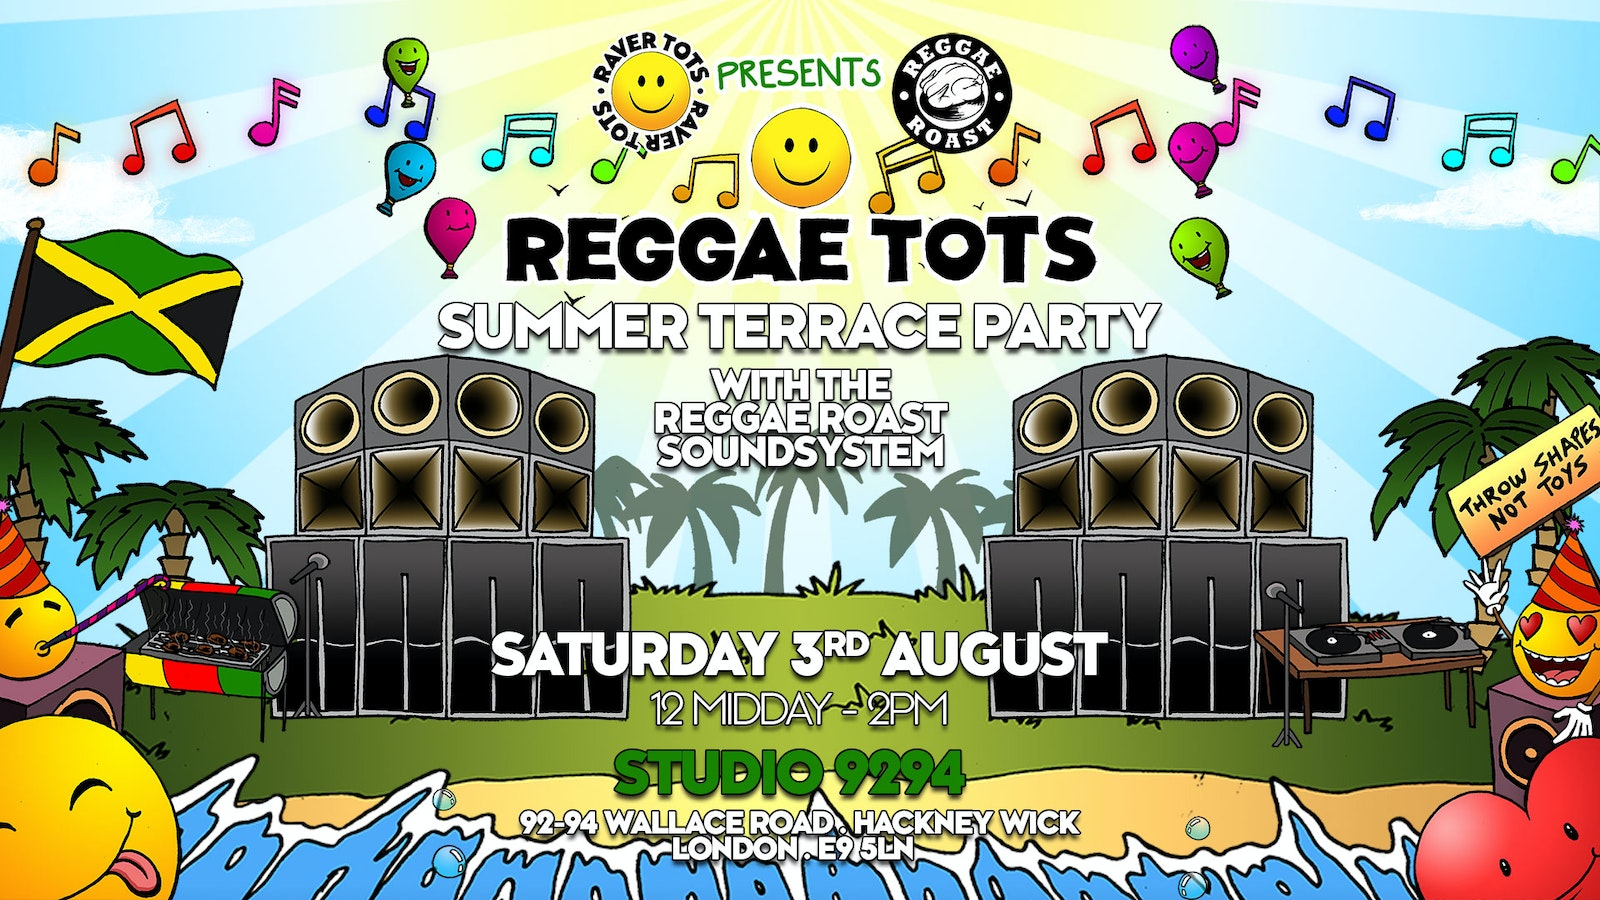 Reggae Tots Summer Terrace Party!